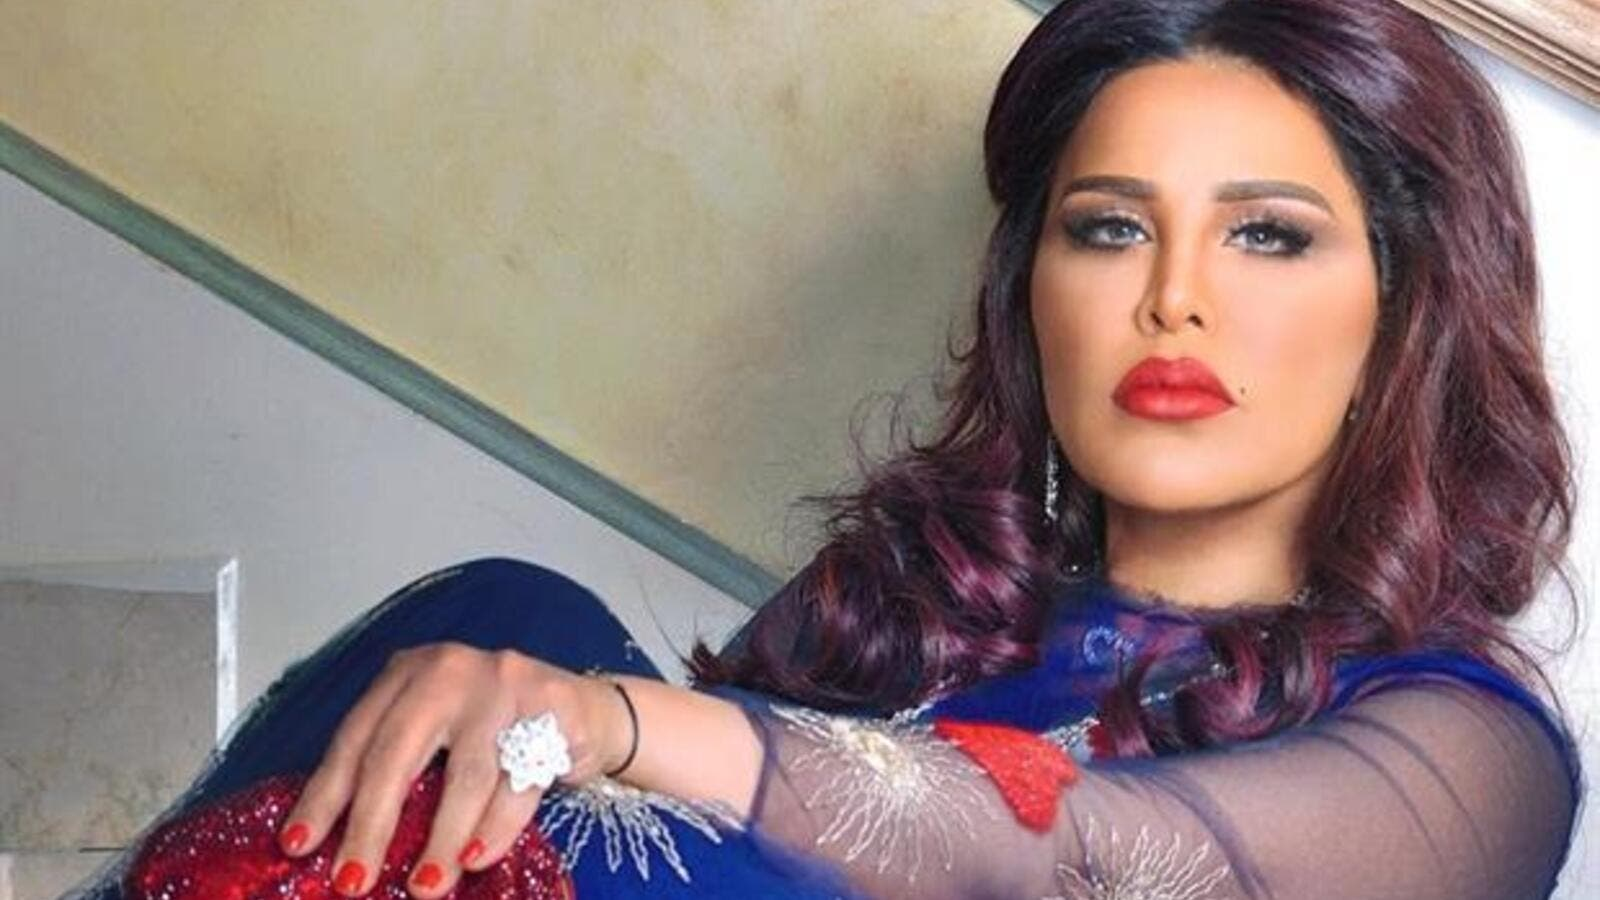 The Emirati singer has started procedures to file a lawsuit against Kuwaiti Twitter users who defamed her on the social networking site. (File photo)